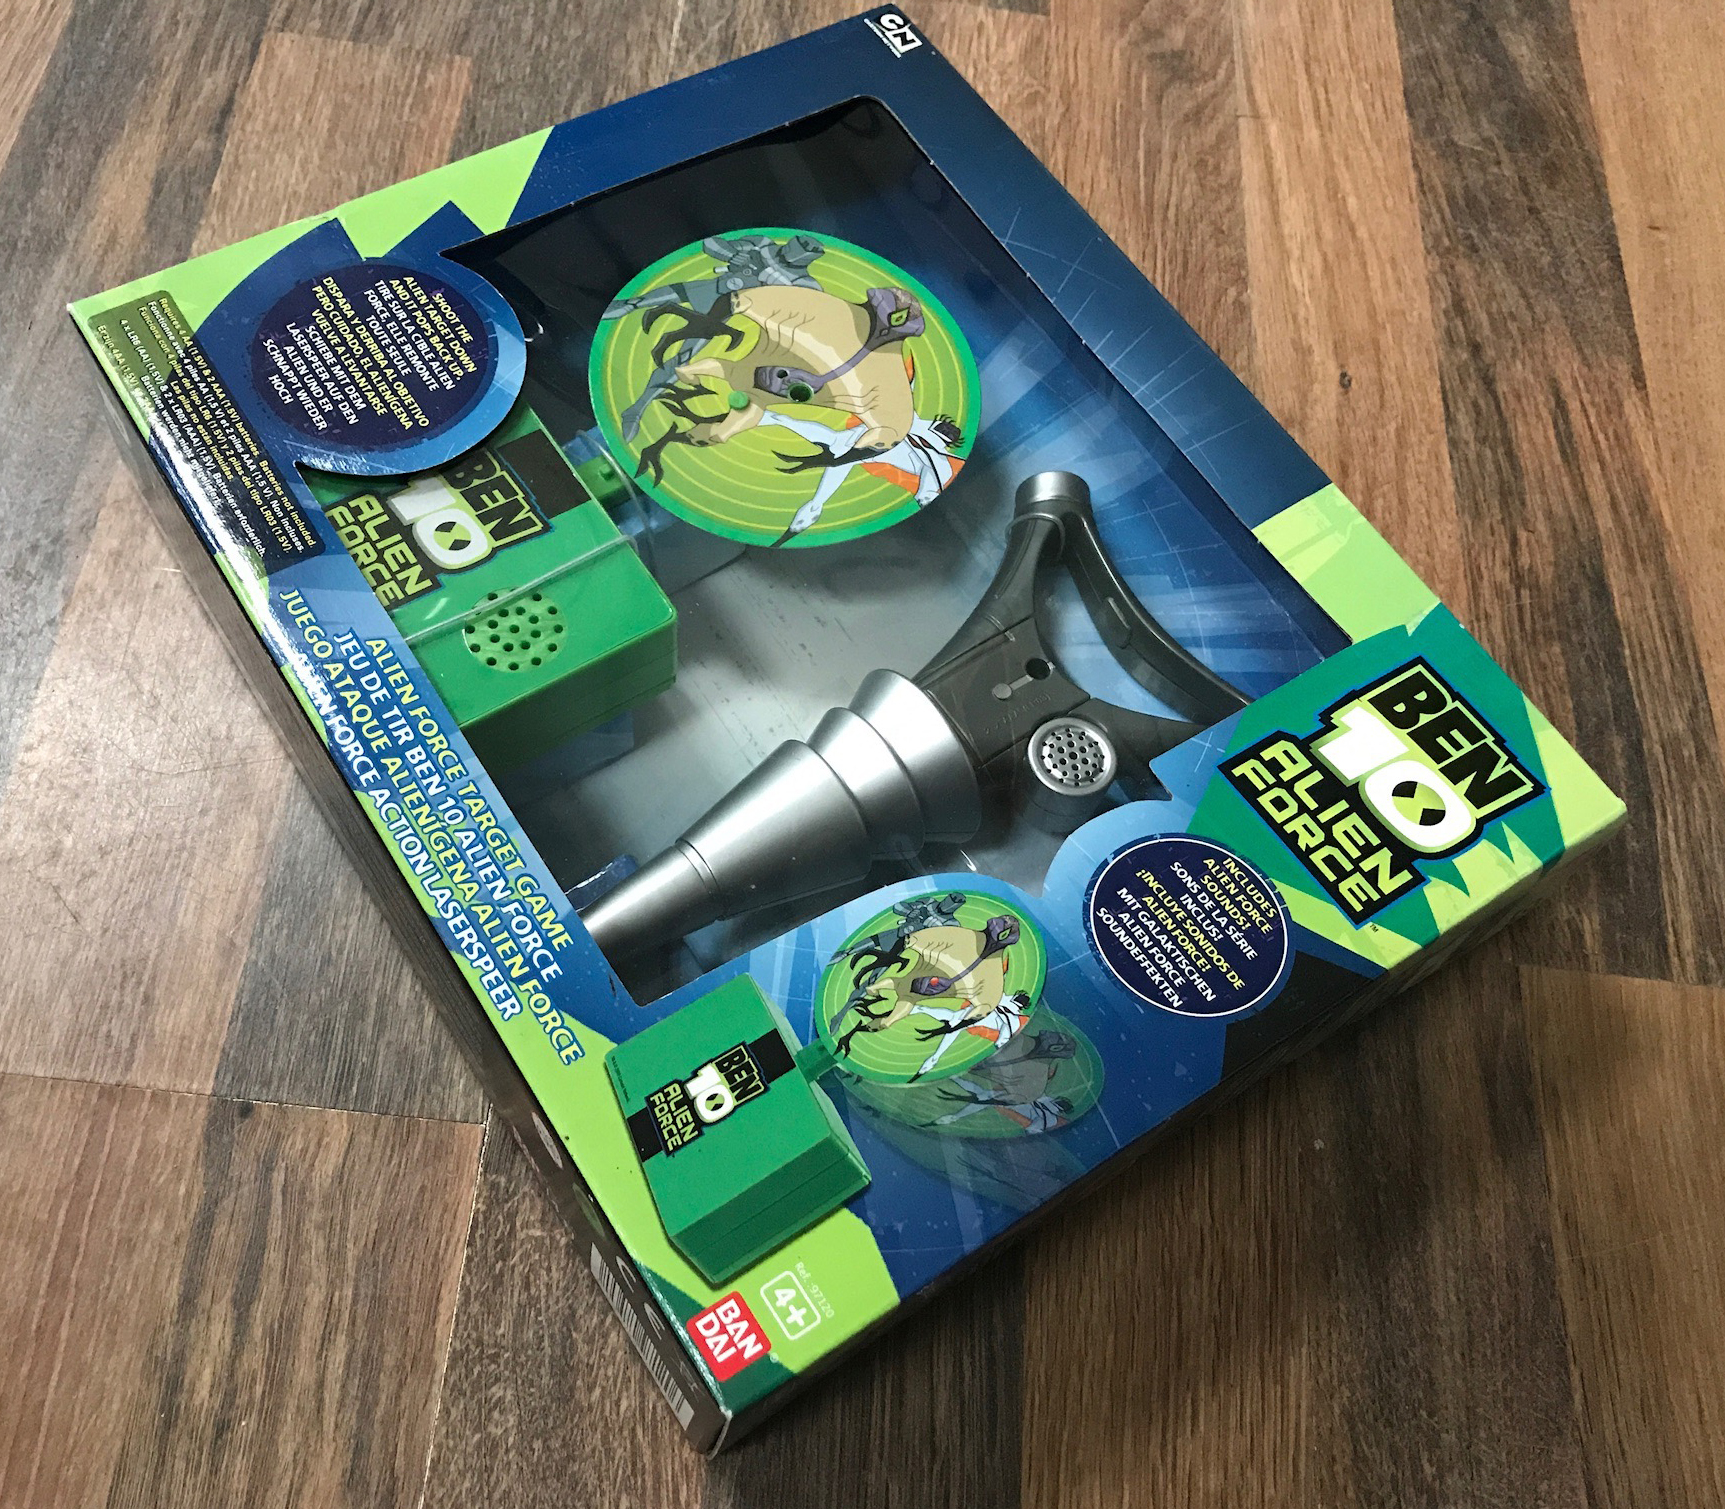 Ben 10 Target game front of pack